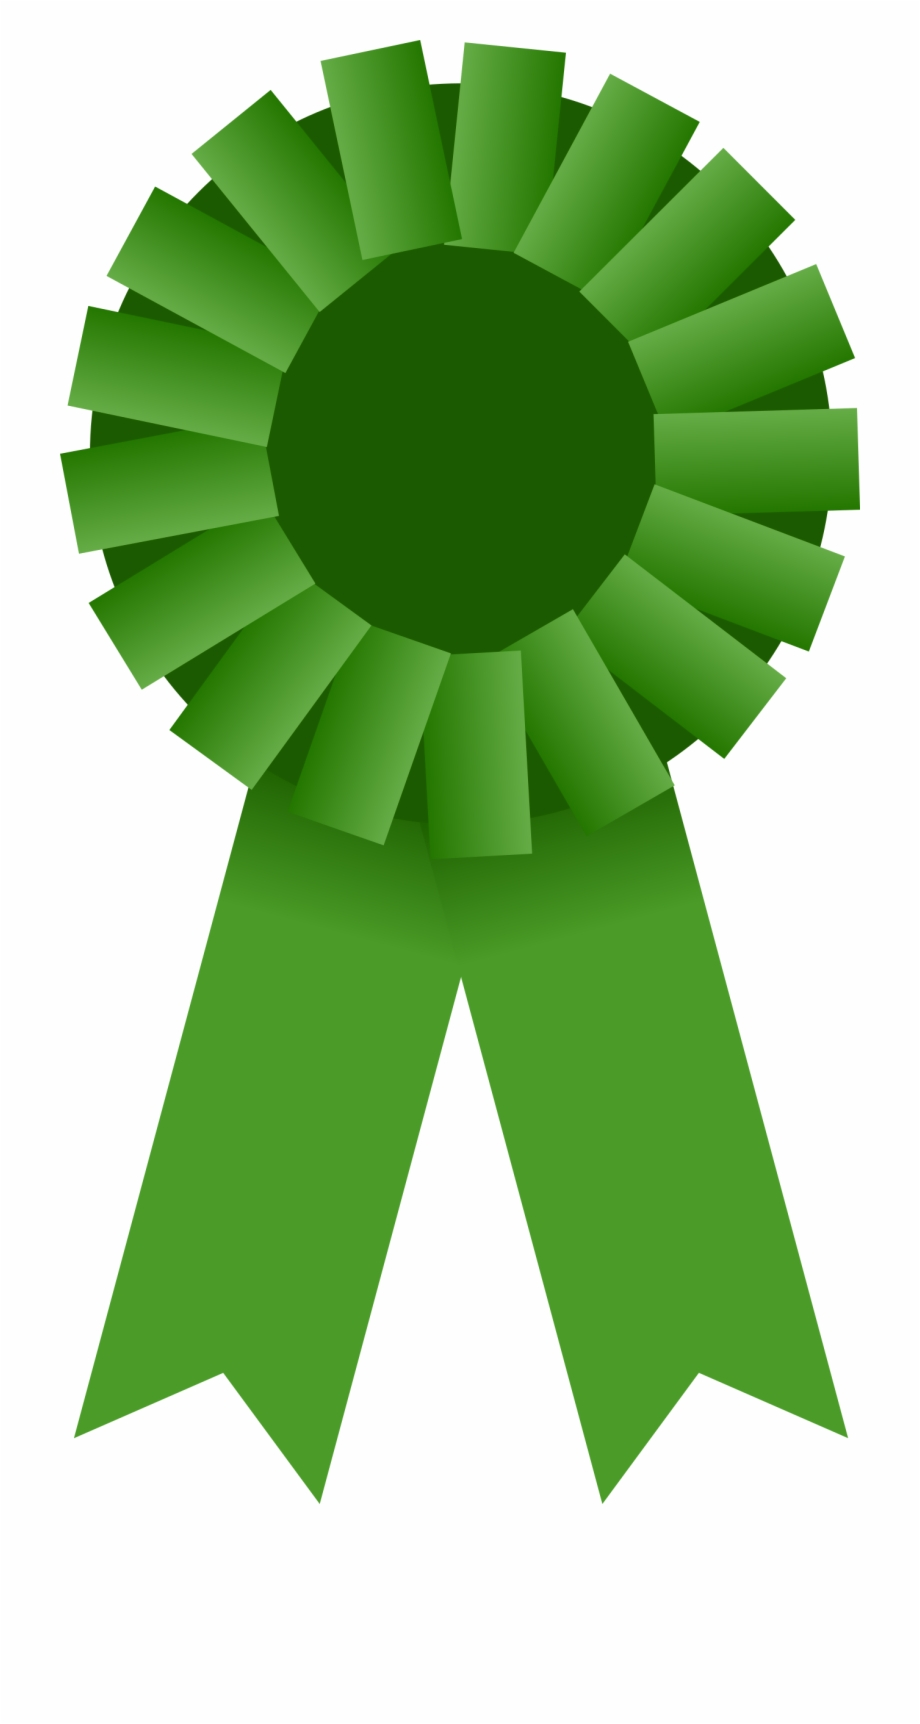 Design award clipart graphic freeuse library This Free Icons Png Design Of Award Ribbon Green - Award ... graphic freeuse library